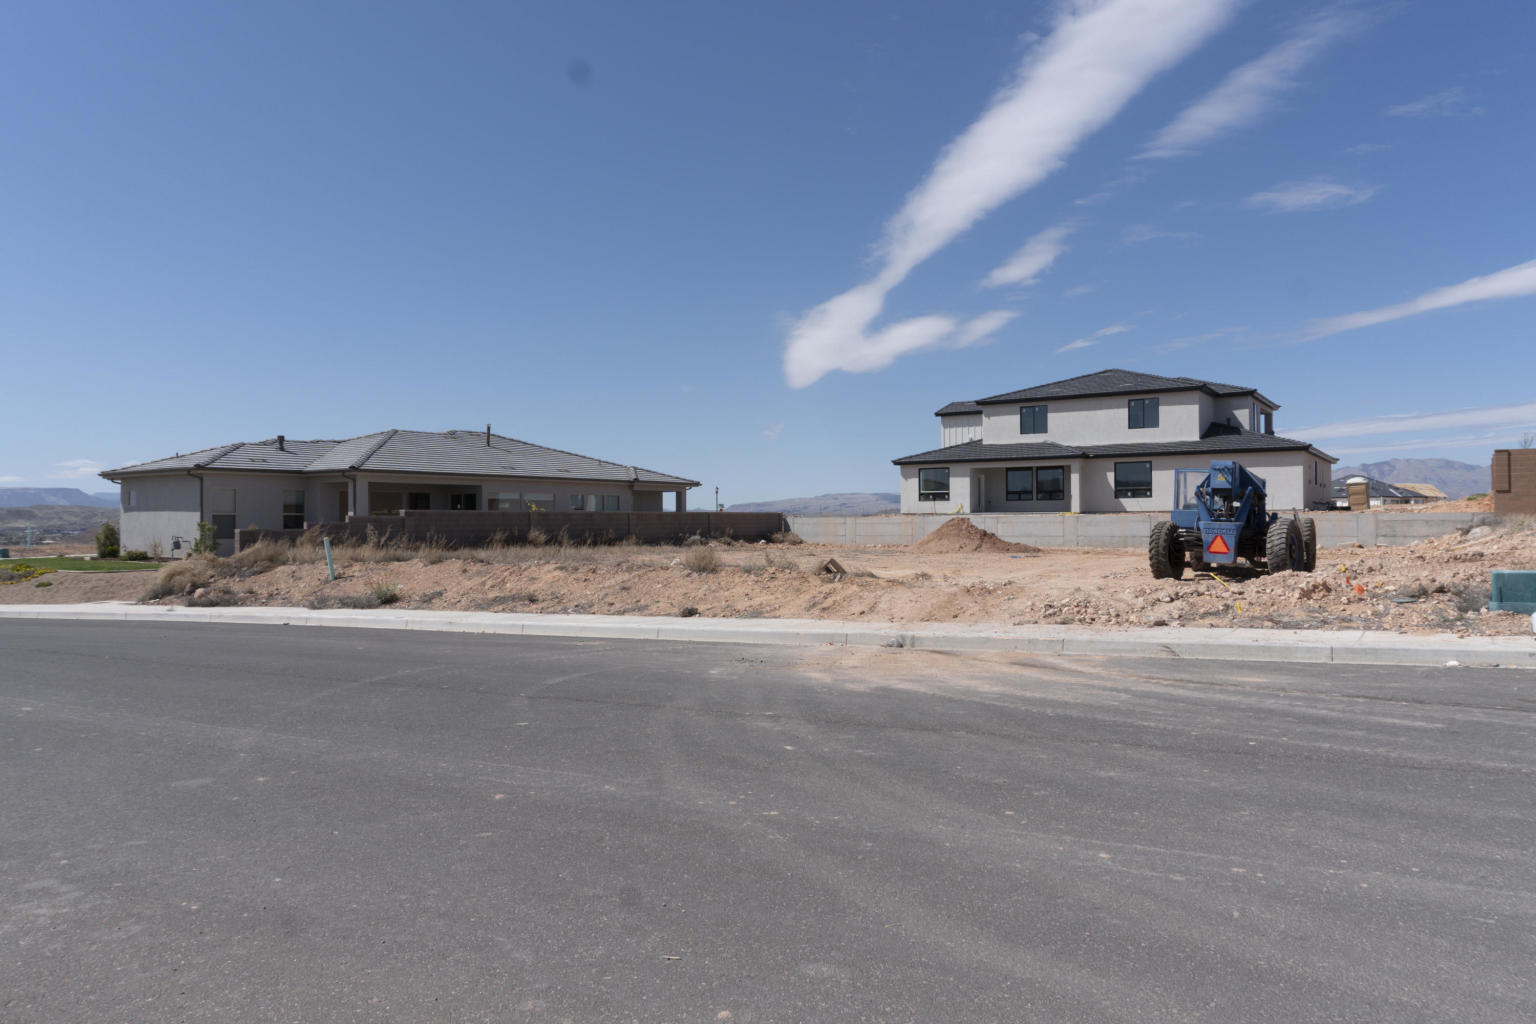 S 1740 10 E, St George in Washington County, UT 84790 Home for Sale